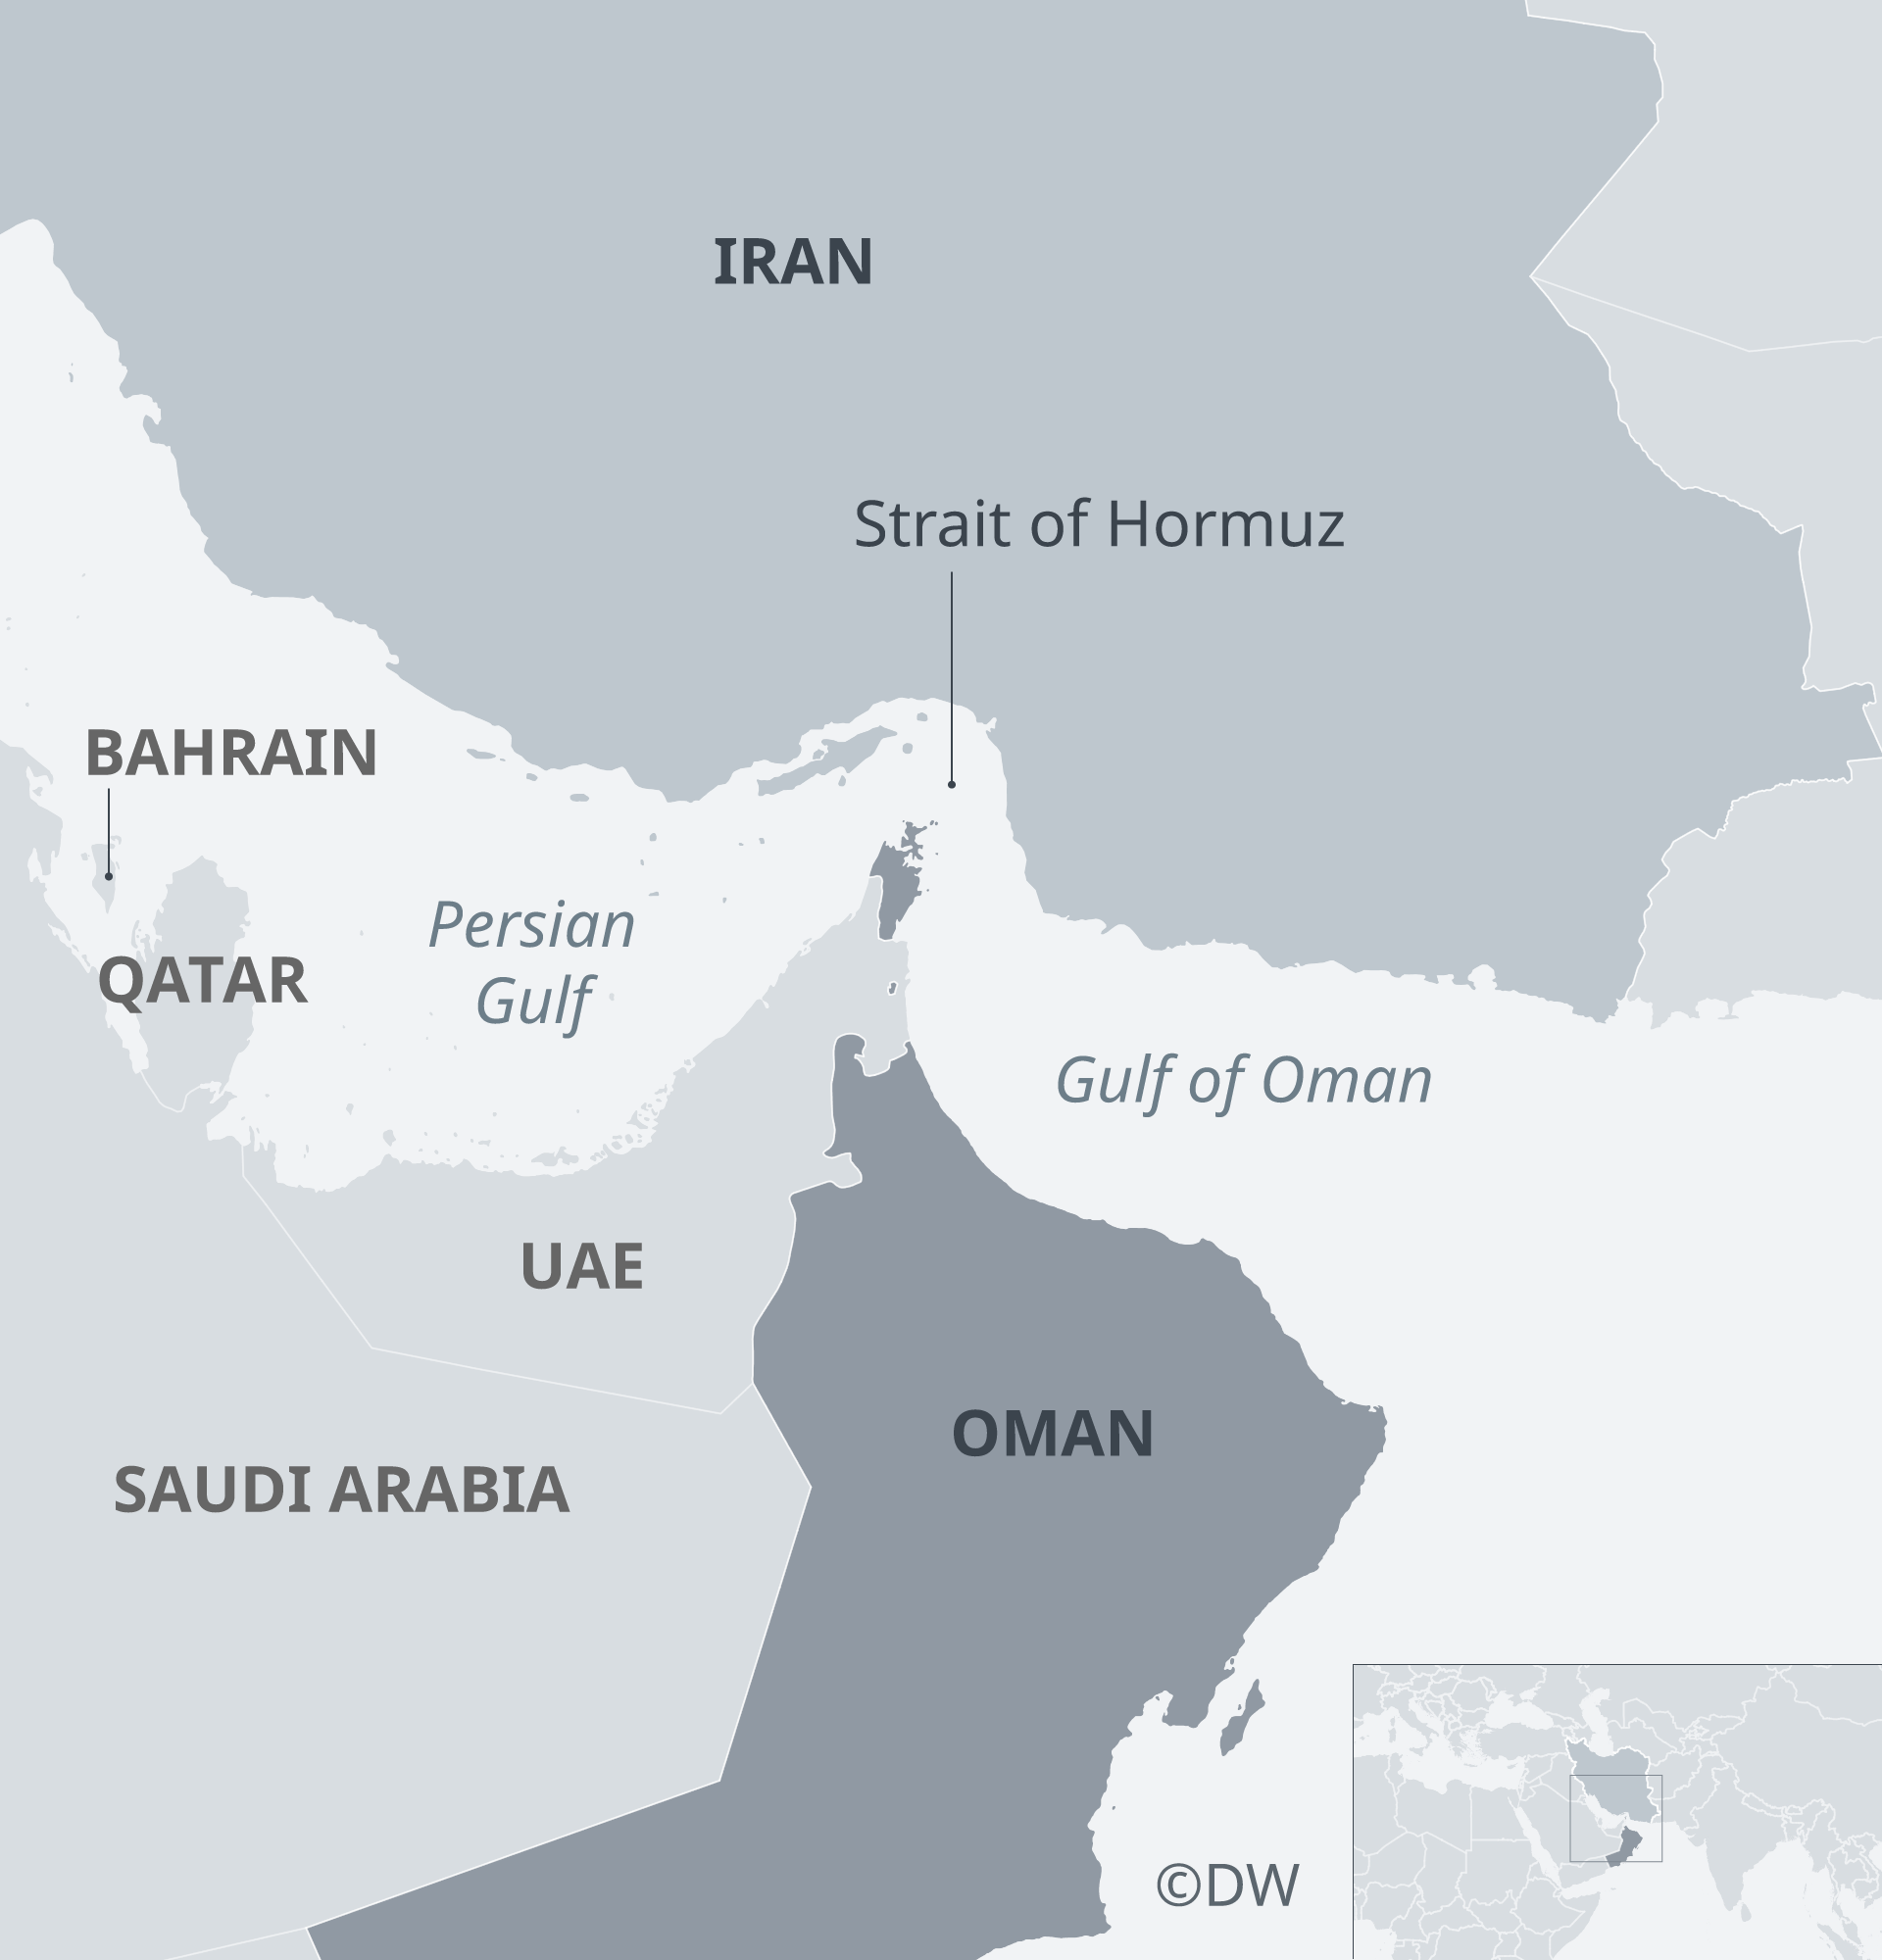 Iran lies across the Persian Gulf and the Strait of Hormuz from the Sunni Muslim states